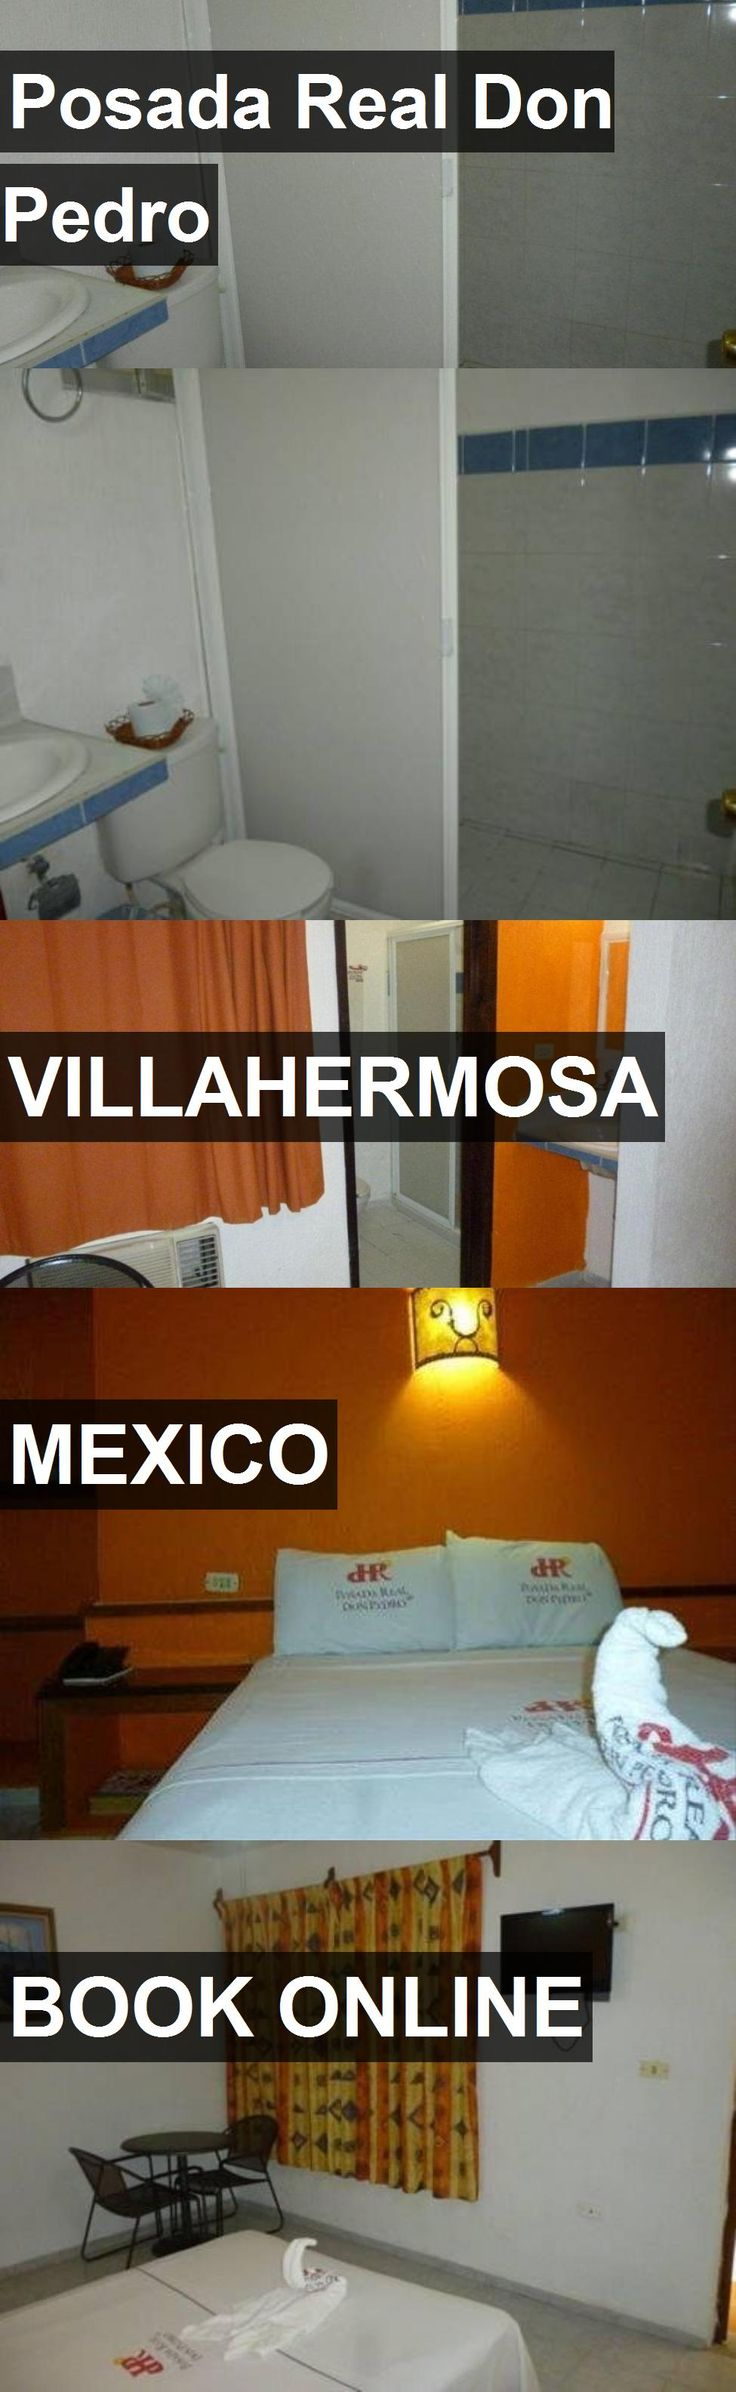 Hotel Posada Real Don Pedro in Villahermosa, Mexico. For more information, photos, reviews and best prices please follow the link. #Mexico #Villahermosa #travel #vacation #hotel